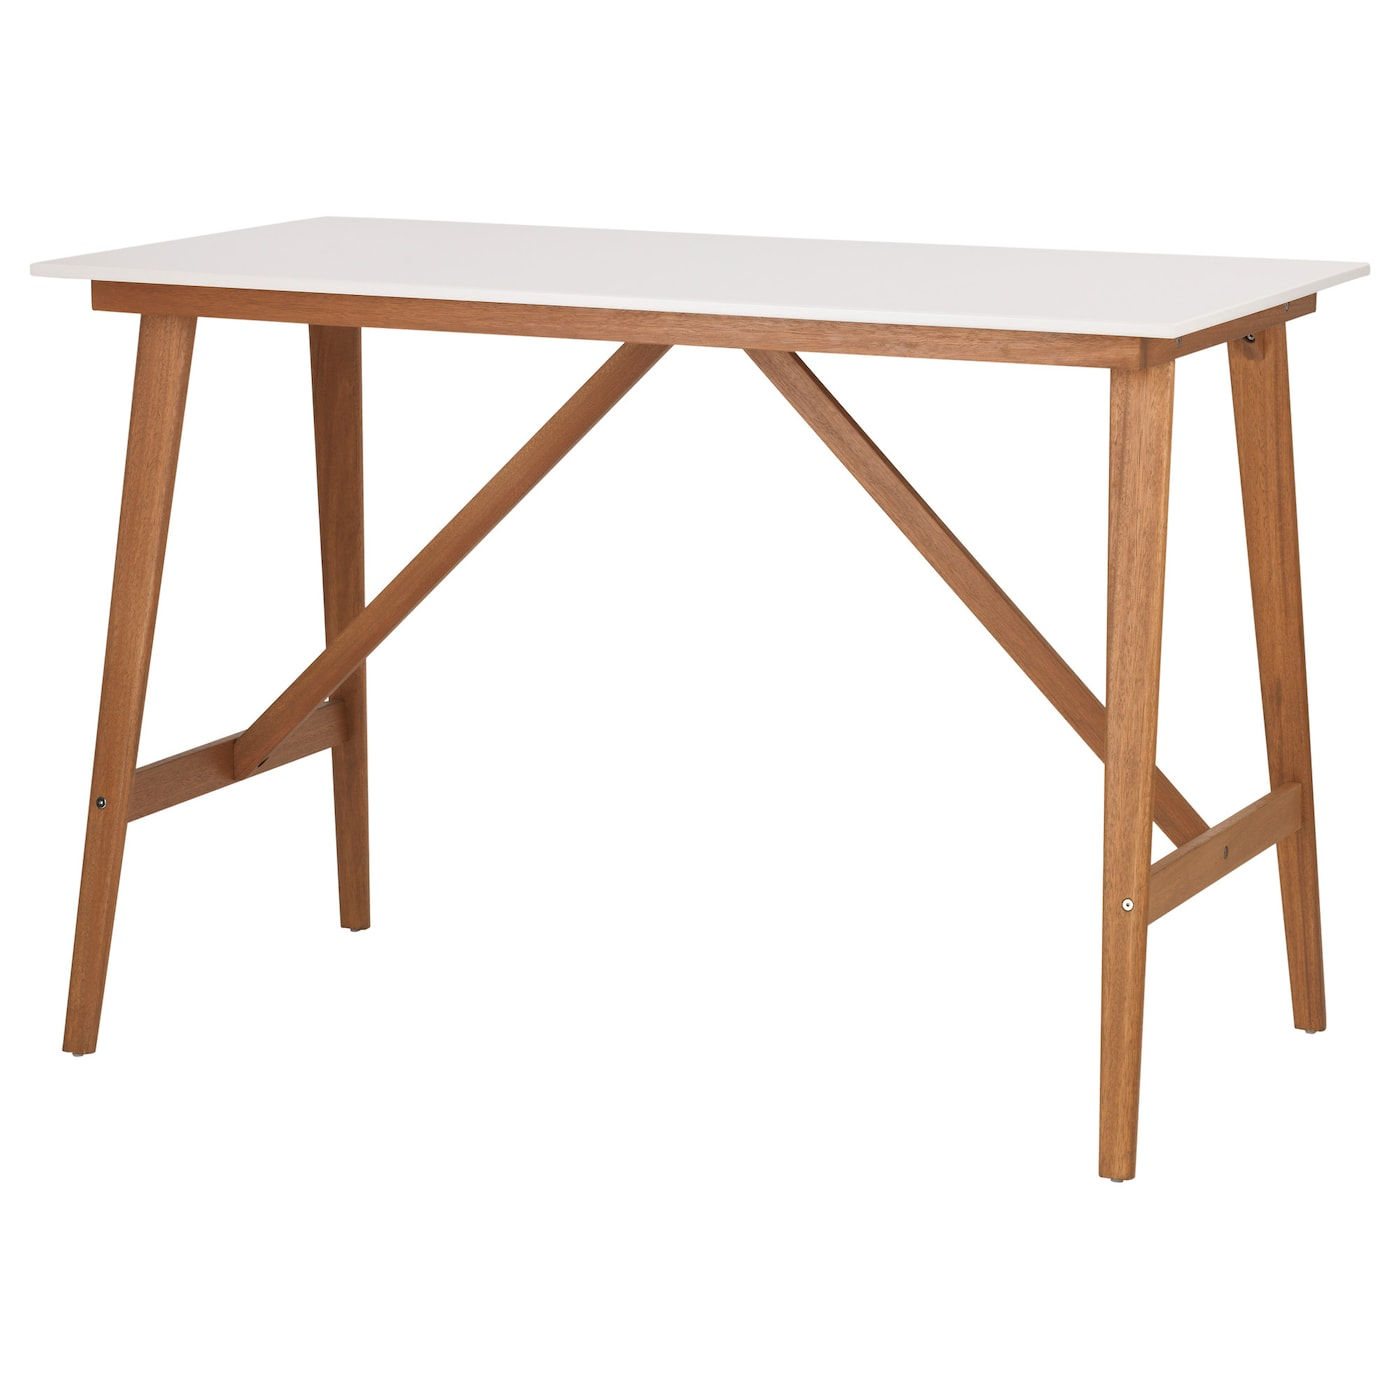 Fanbyn bar table white 140x78x95 cm ikea - Table et chaise ikea ...